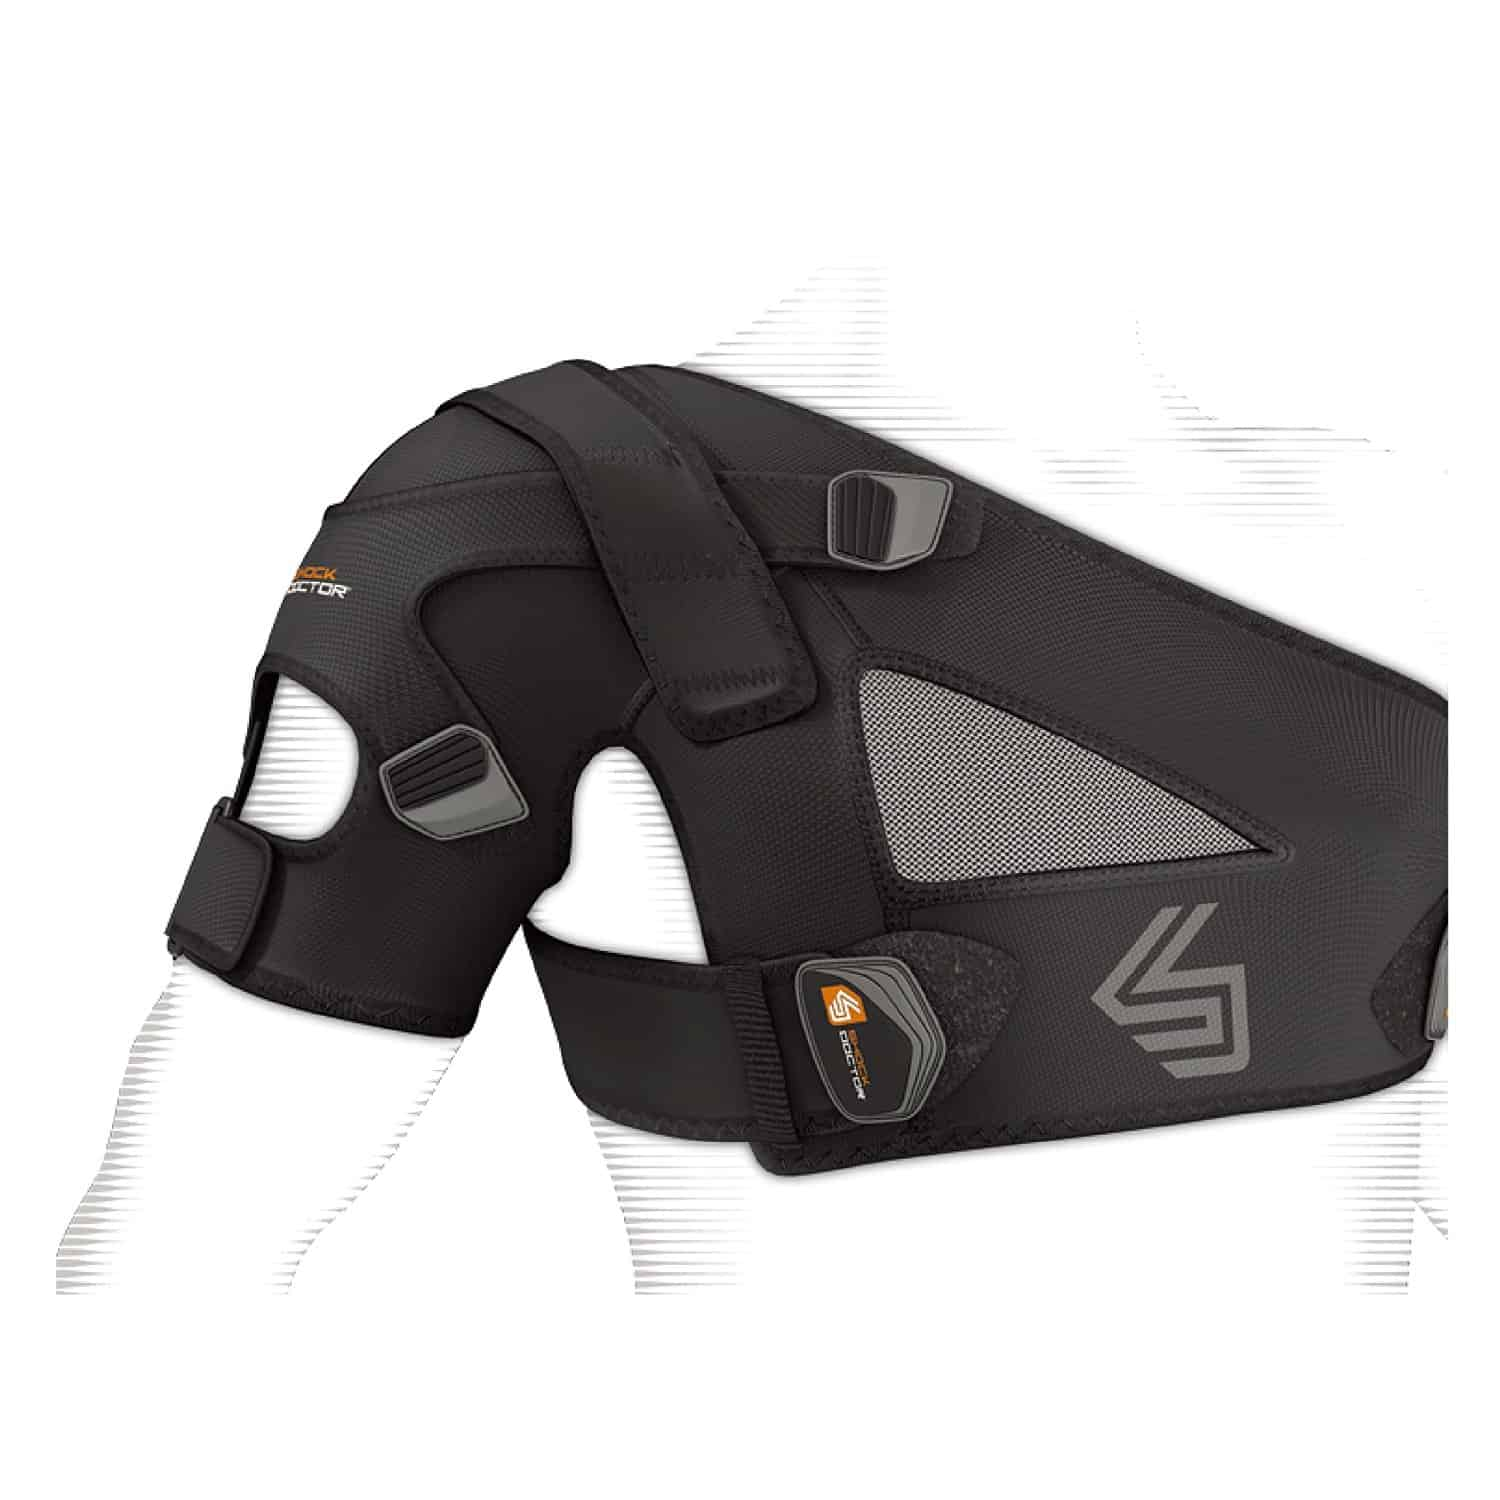 ac joint pad for football. shock doctor 842 shoulder brace ac joint pad for football